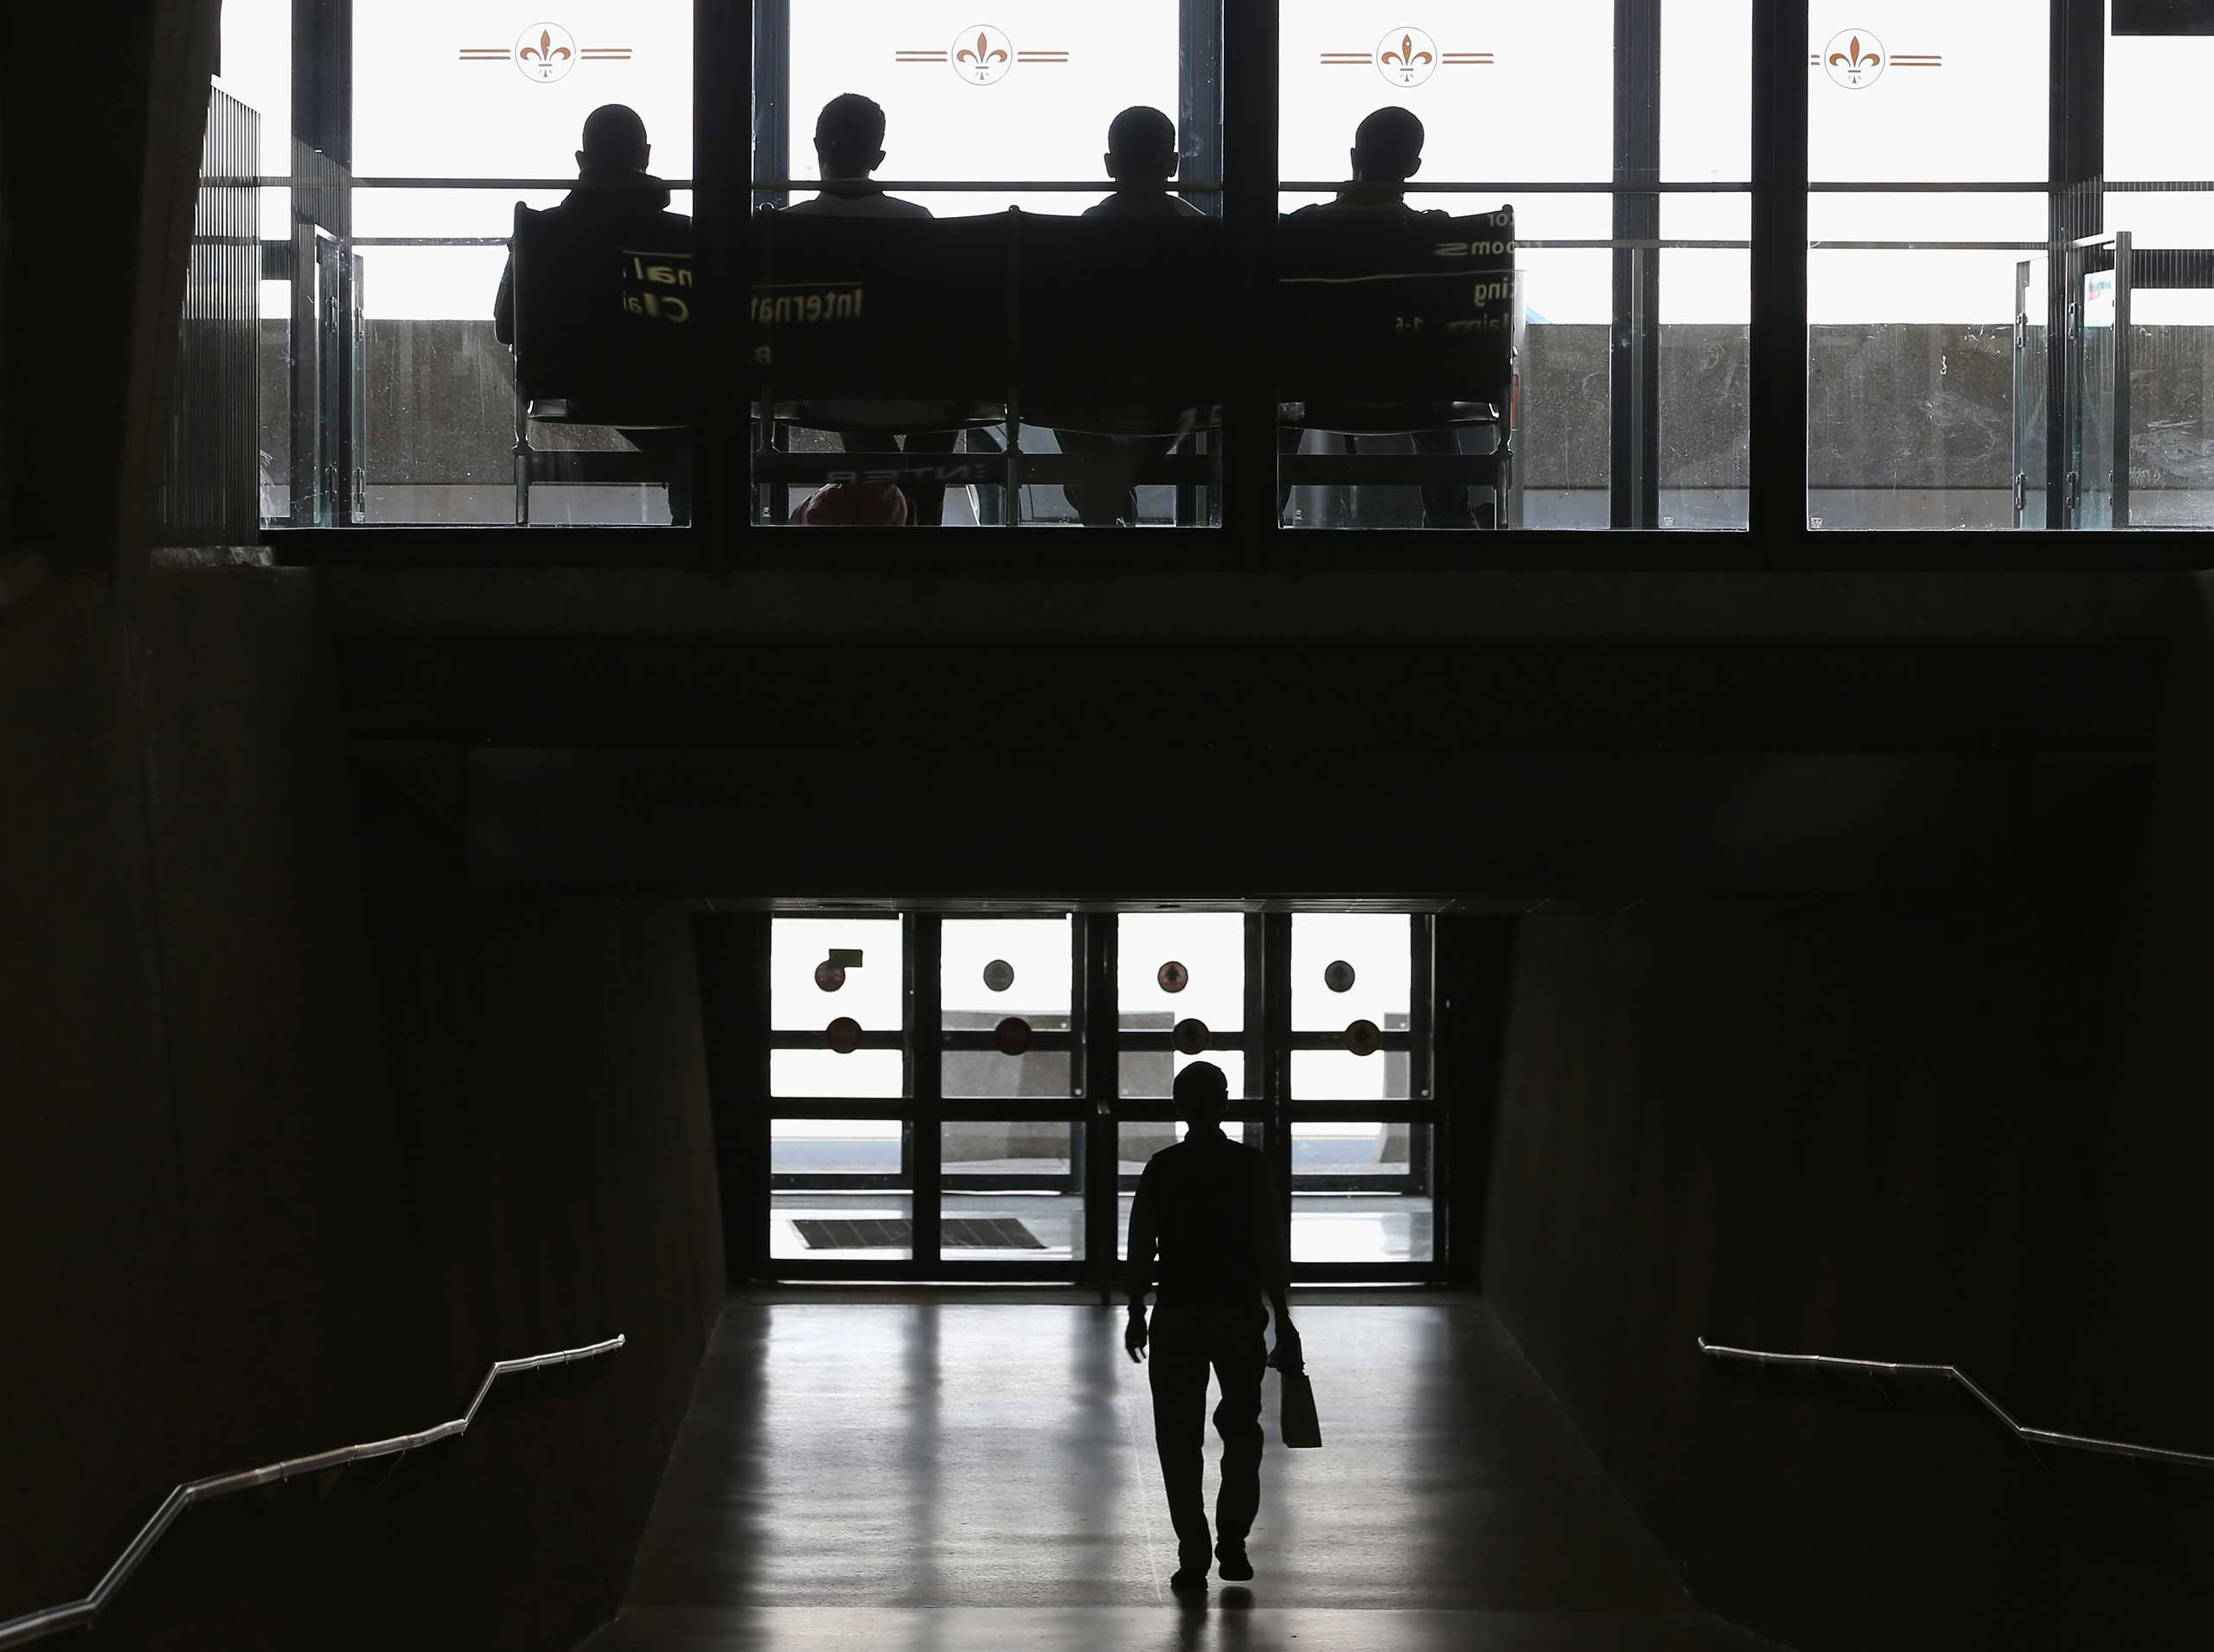 People gather in the terminal at Washington Dulles International Airport in Dulles, Va., on Oct. 2, 2014